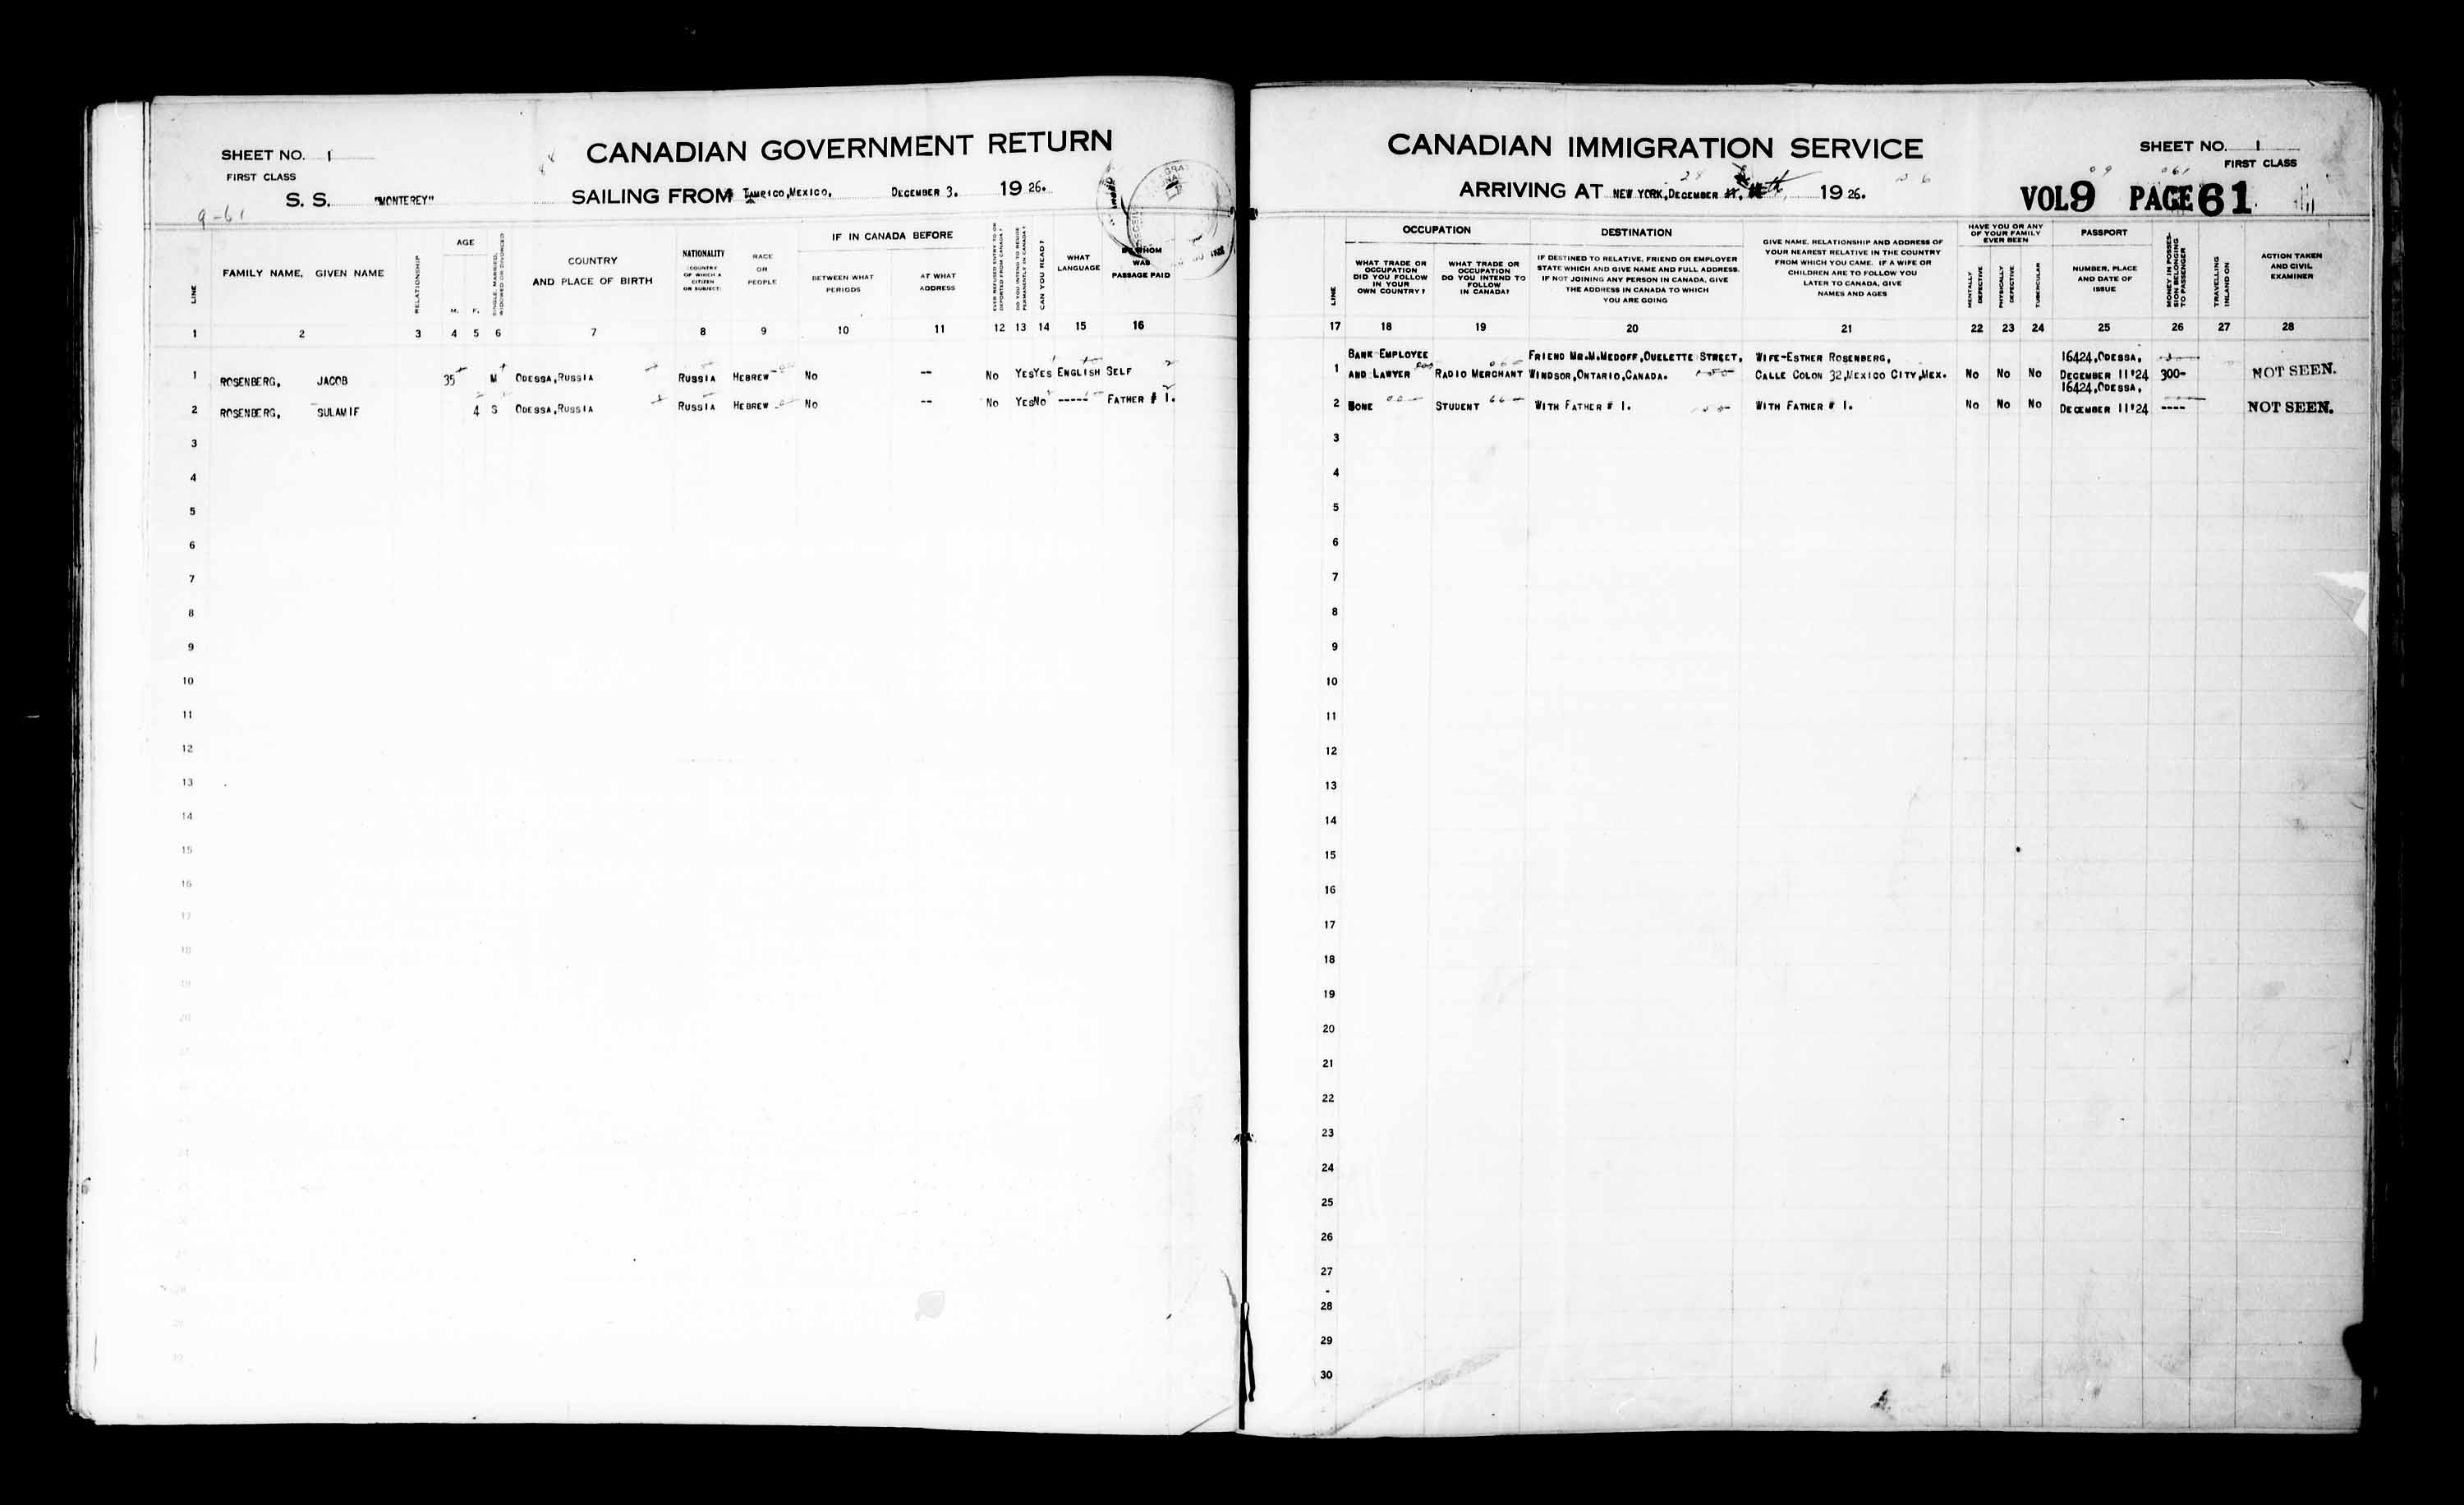 Title: Passenger Lists: New York (1925-1935) - Mikan Number: 161343 - Microform: t-14929